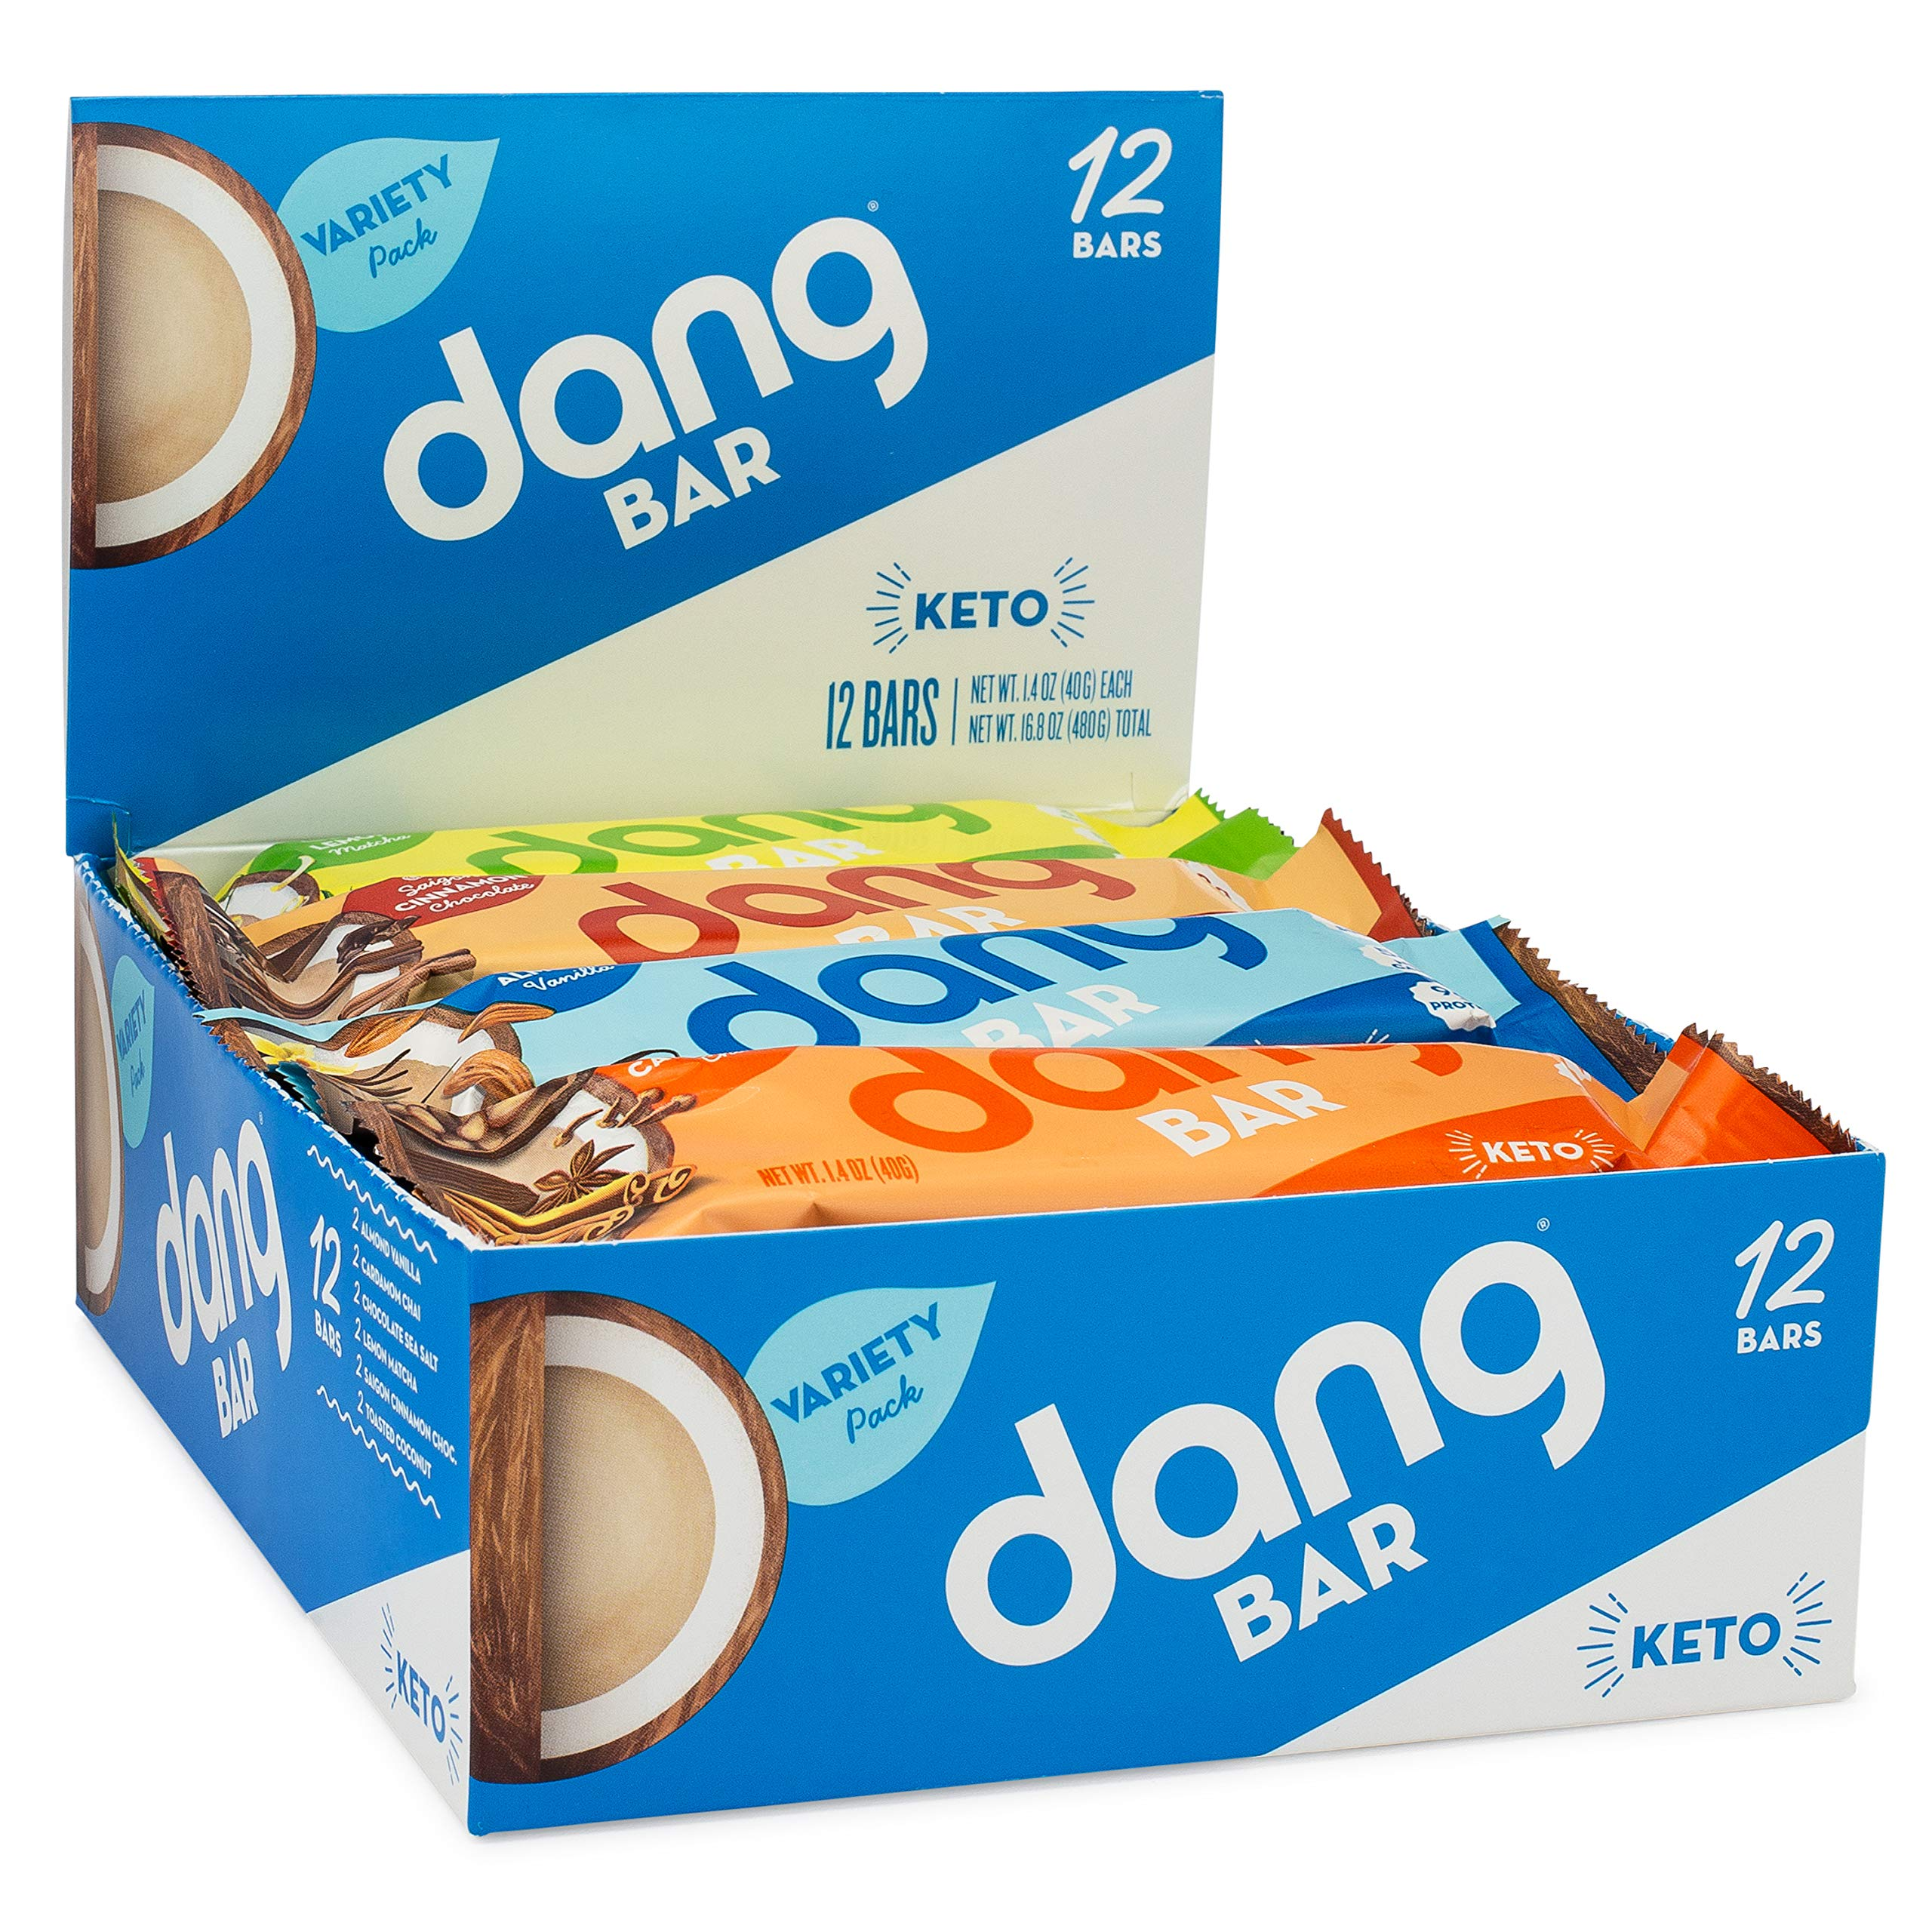 NEW! Dang Bar- KETO CERTIFIED, Low Carb, Plant Based, Gluten Free, Real Food Snack Bar, 1-3g Sugar, 4-5g Net Carbs, No Sugar Alcohols or Artificial Sweeteners, 12 Count (6 Flavor Variety Pack) by DANG (Image #9)